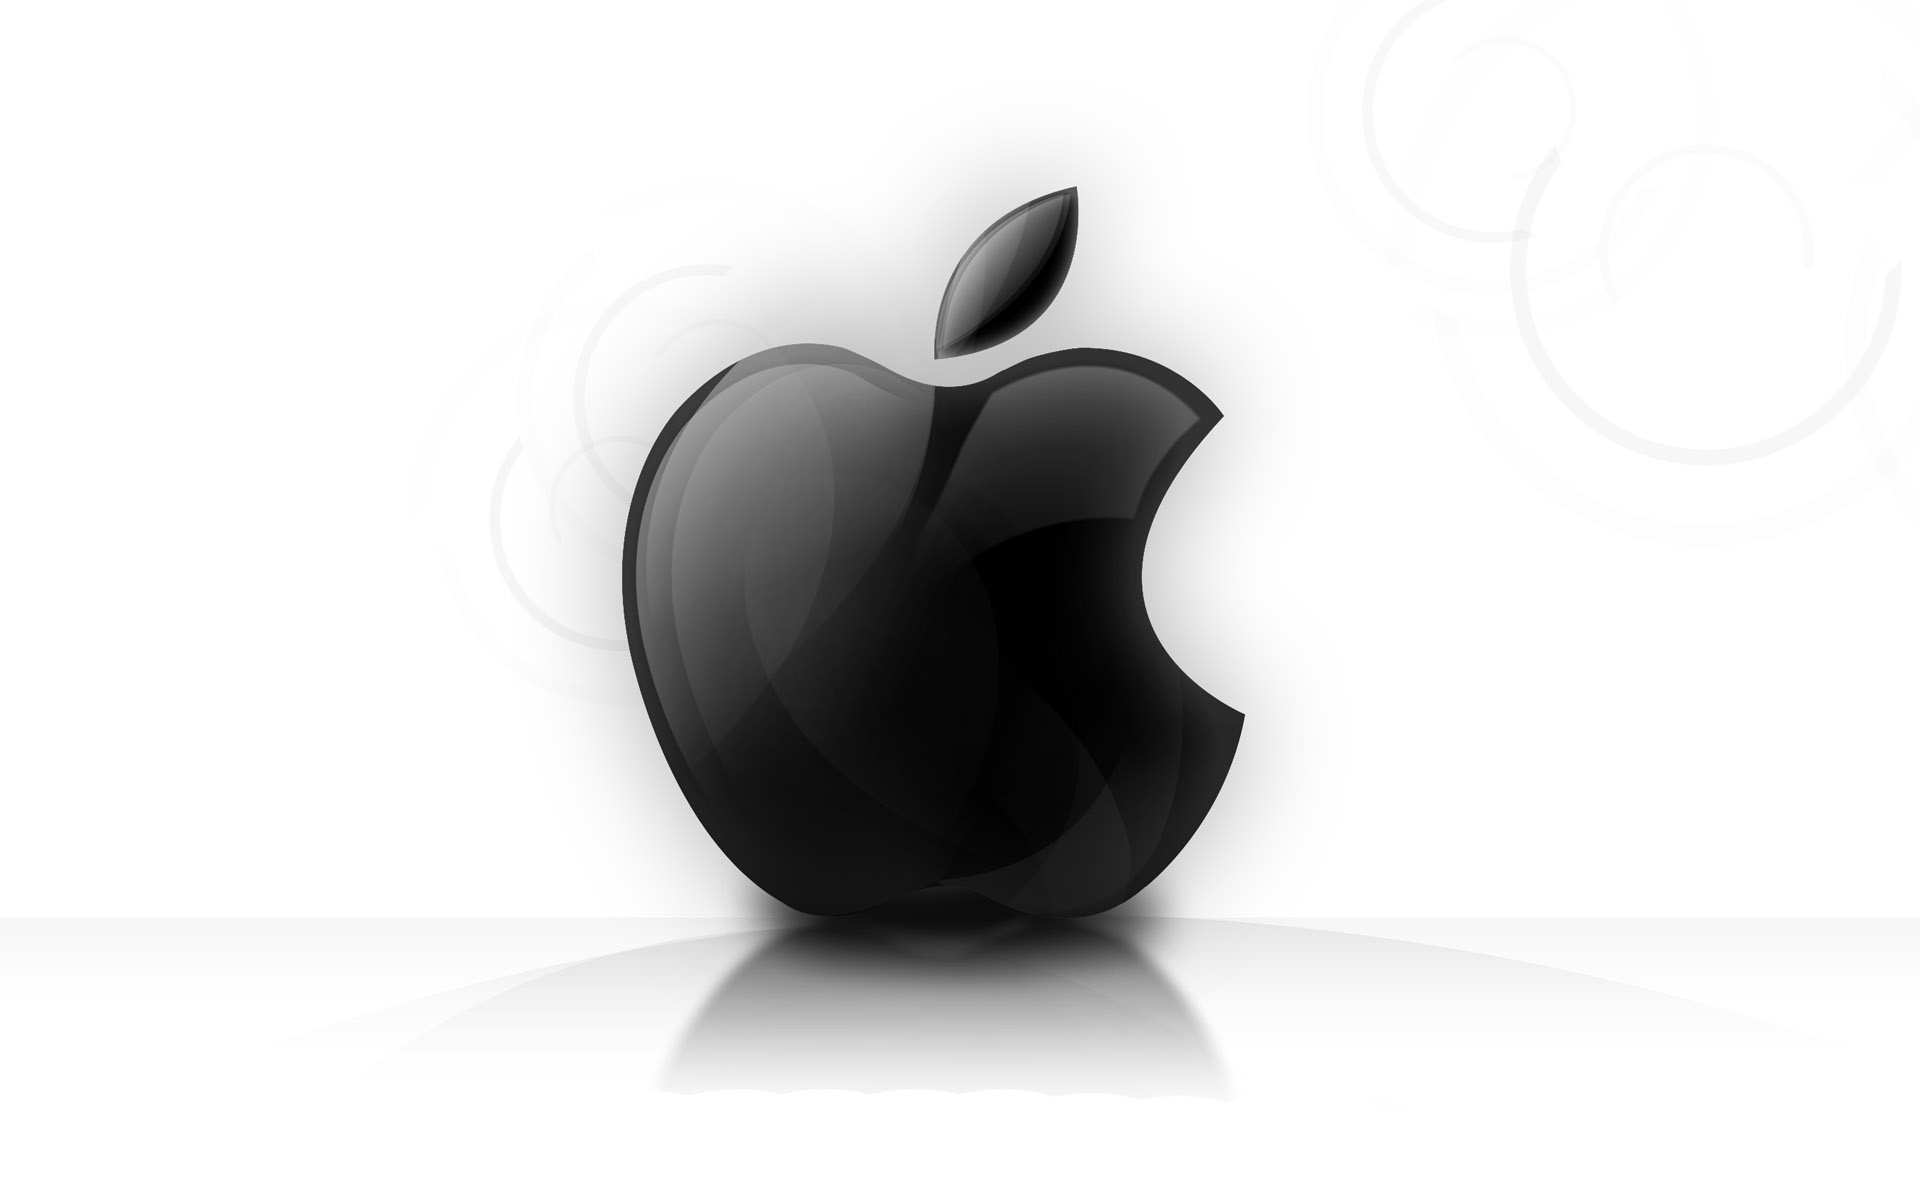 shining glassy apple logo wallpapers in jpg format for free download